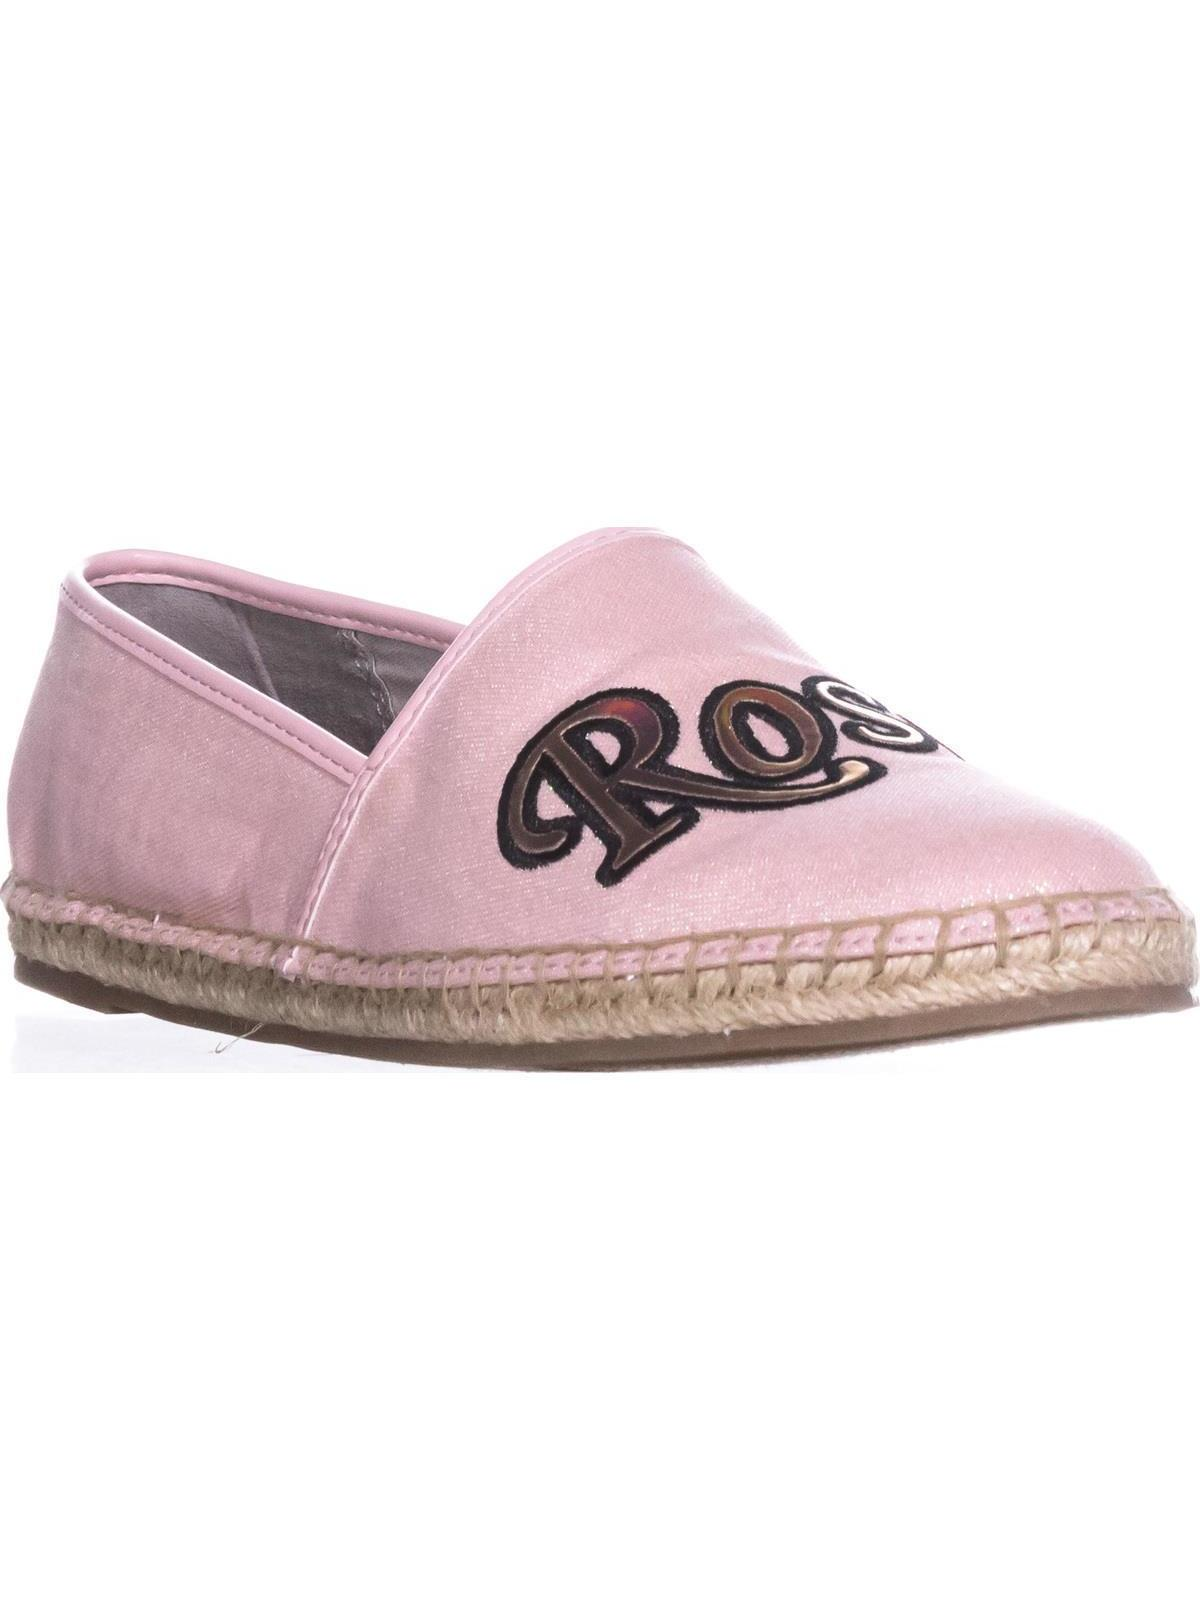 Womens Circus by Sam Edelman Leni8 Espadrille Slip On Flats, Rose All day